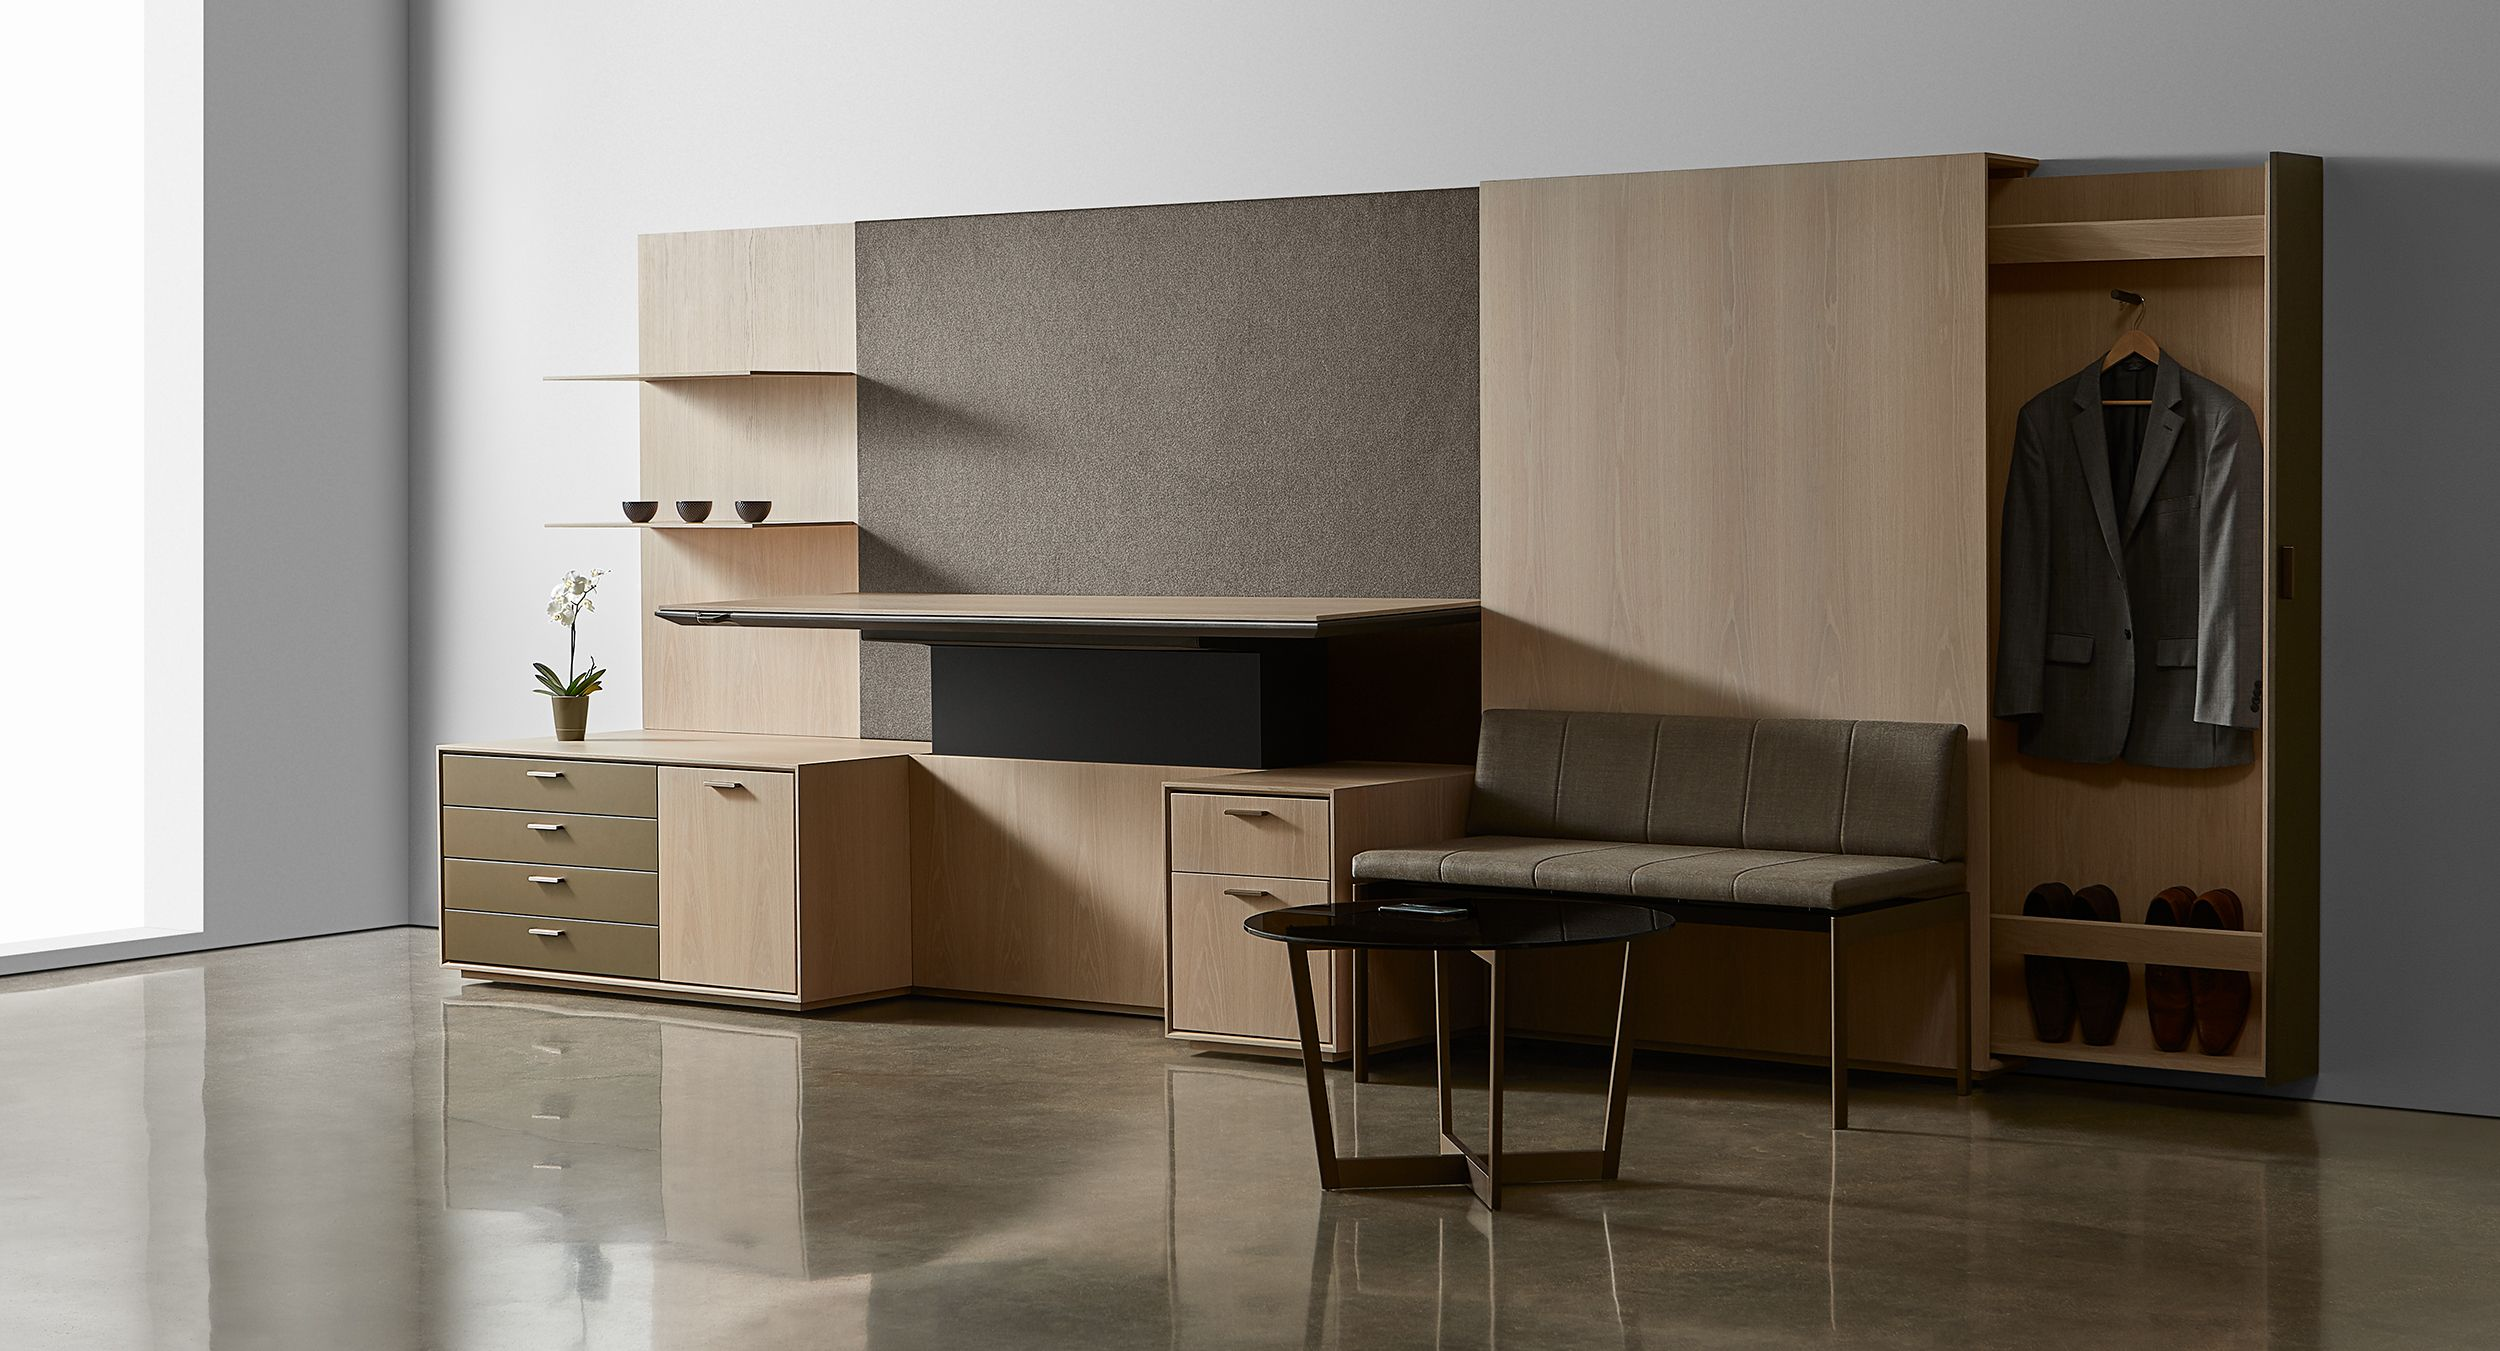 Halo's clean lines conceal an abundance of thoughtful storage options.